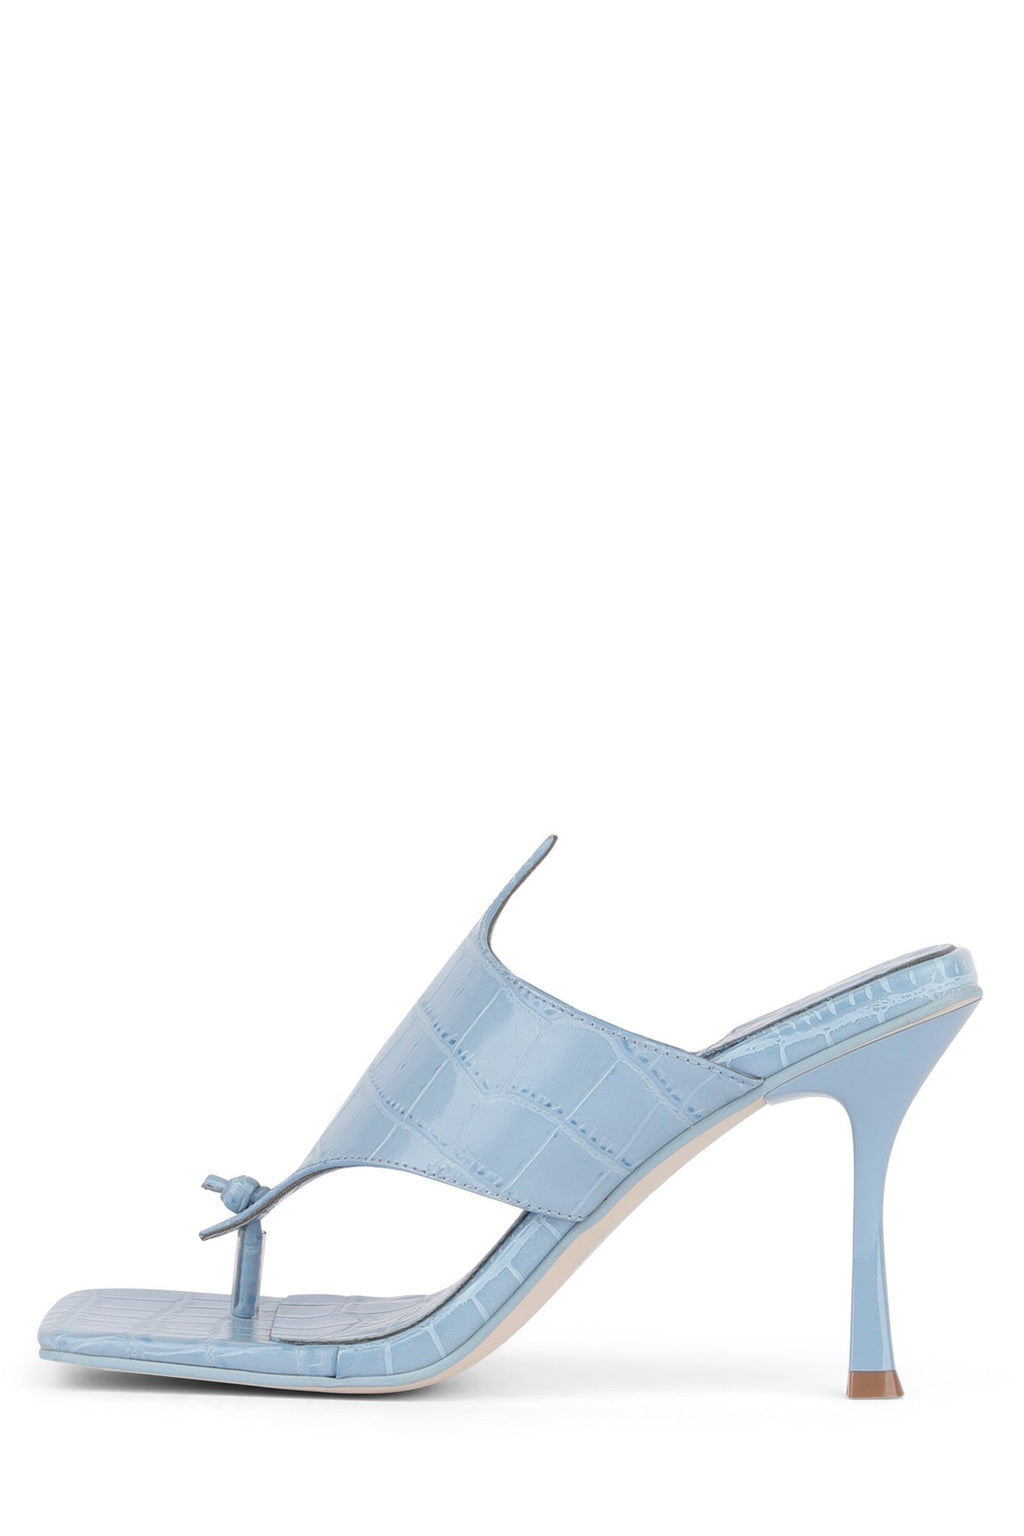 AMORES Heeled Sandal YYH Blue Croco 6